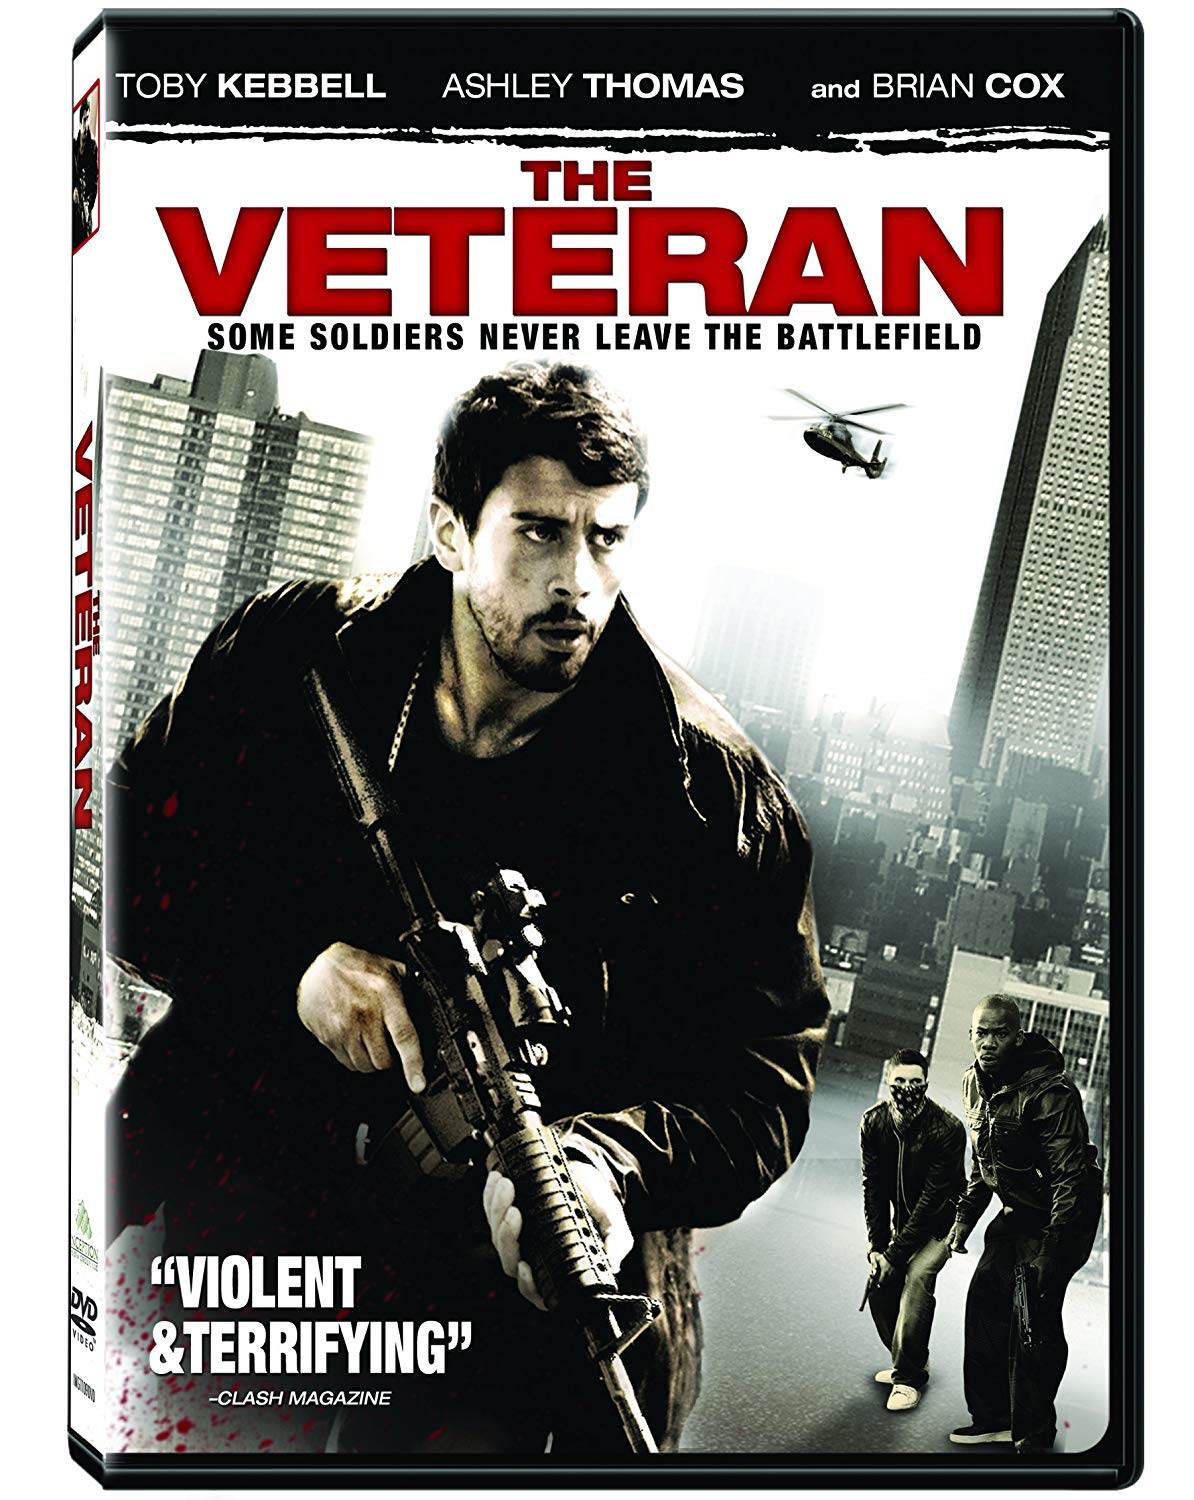 FILM: The Veteran (2011) 5/10